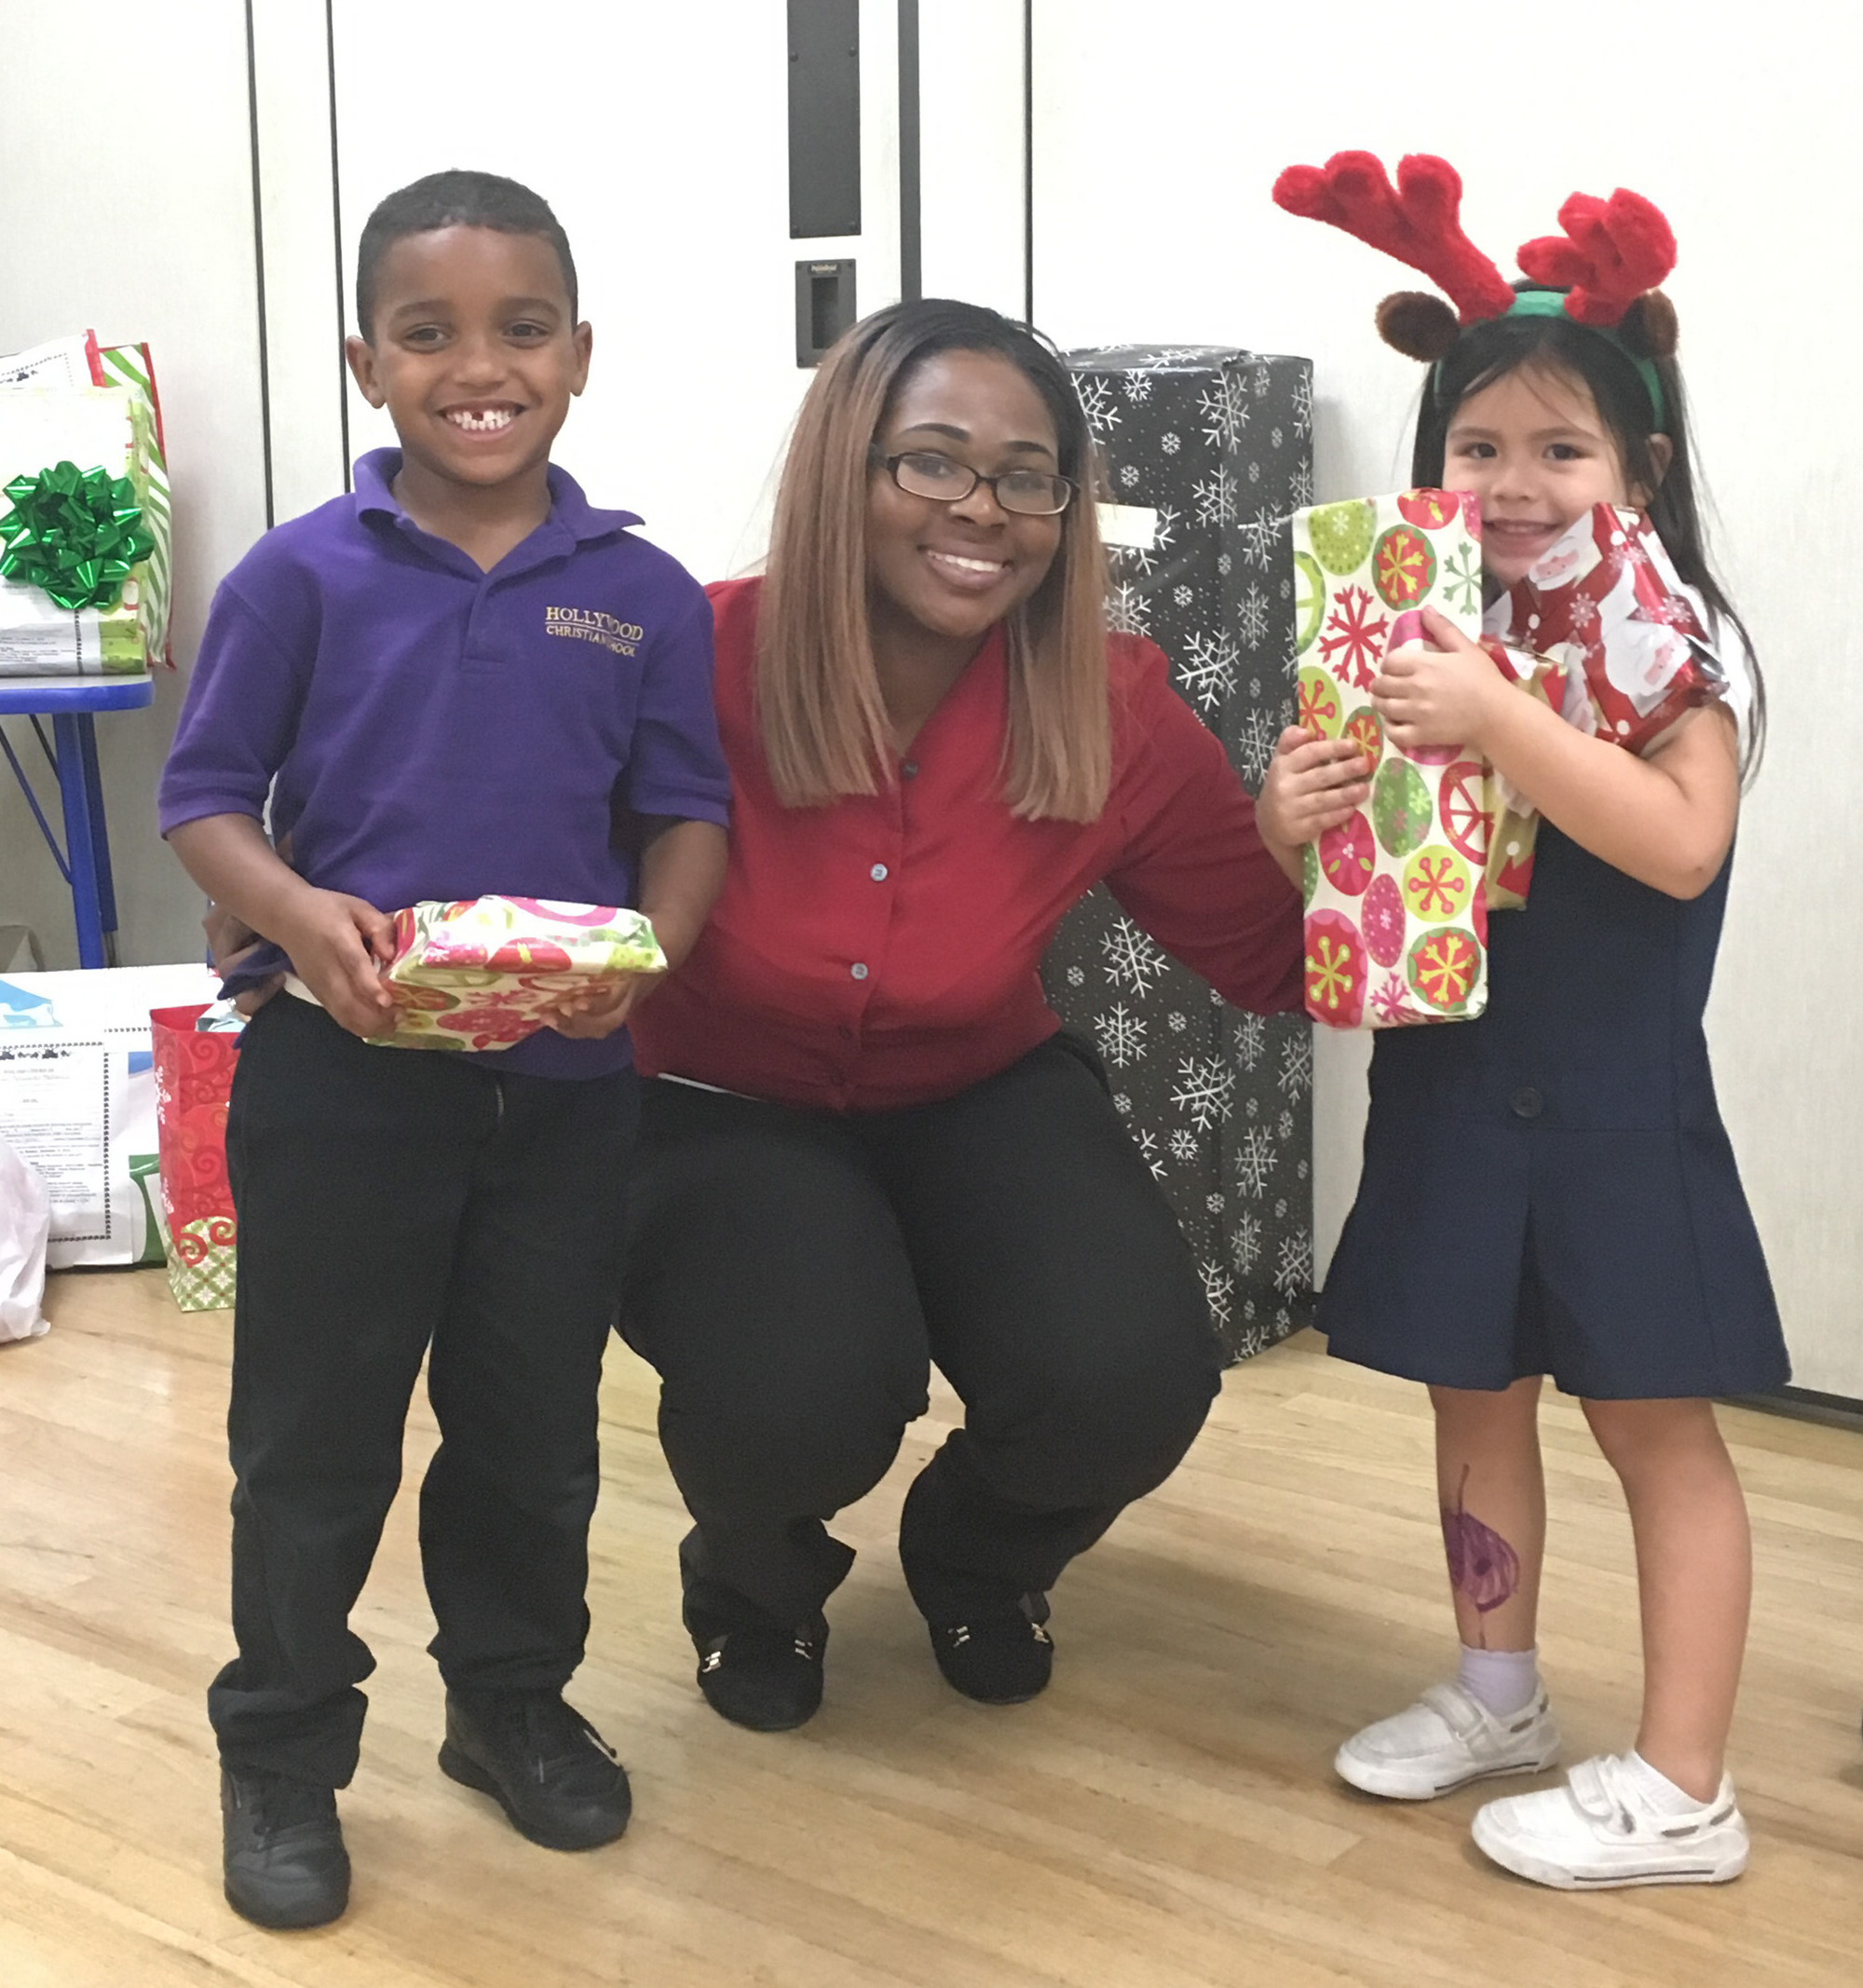 Smiling faces, thanks to the Empty Stocking Program